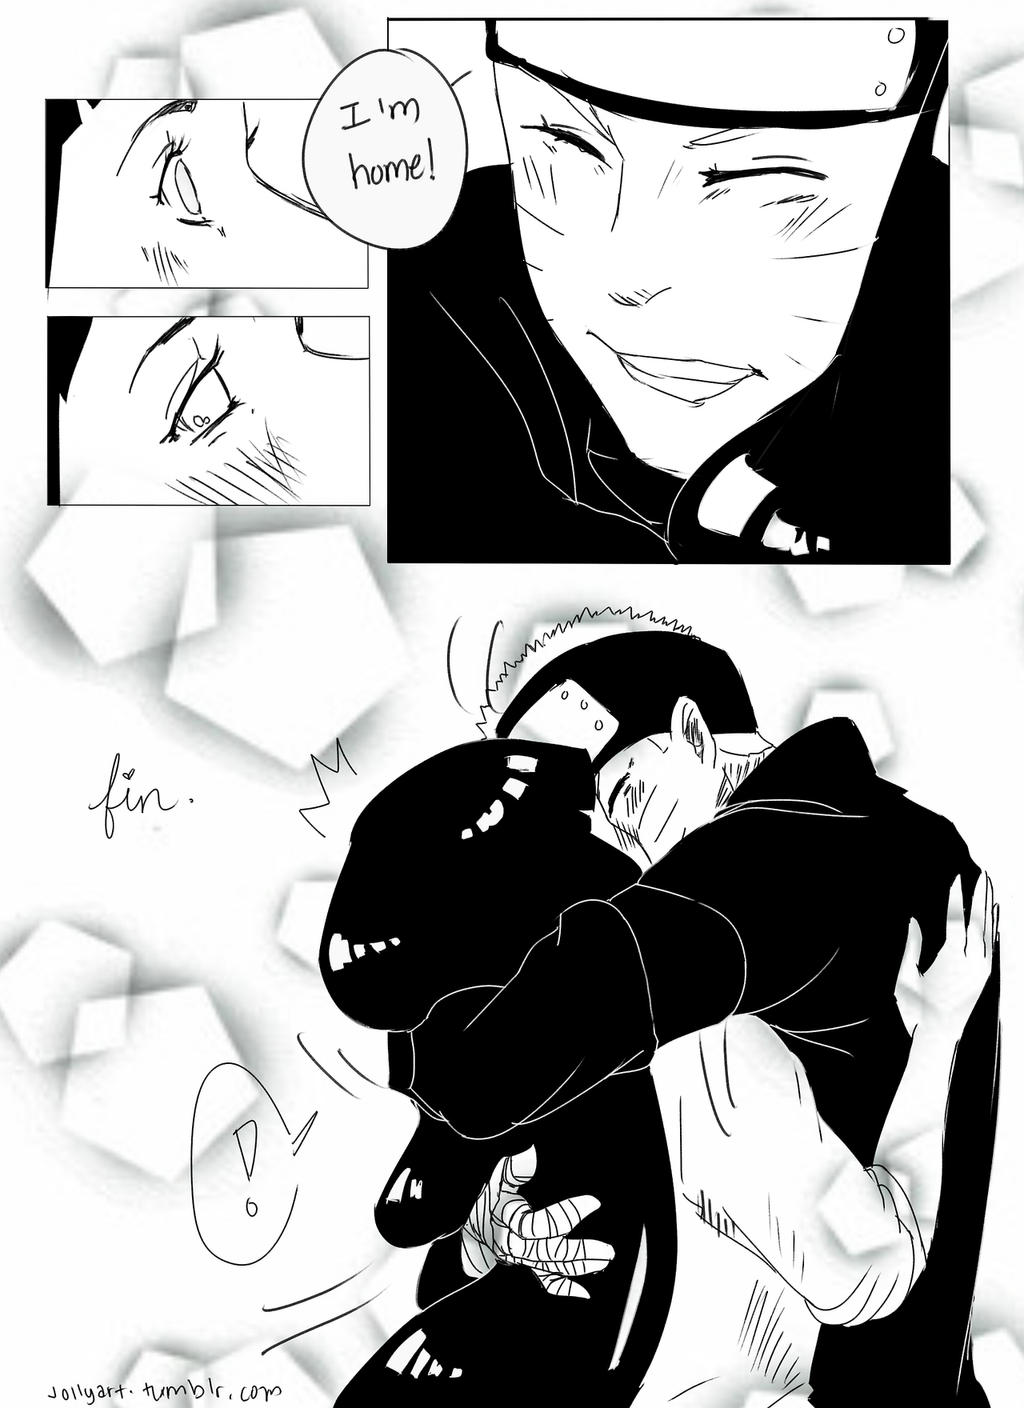 Naruto S First Time Coming Home To His Wife Pg8 By